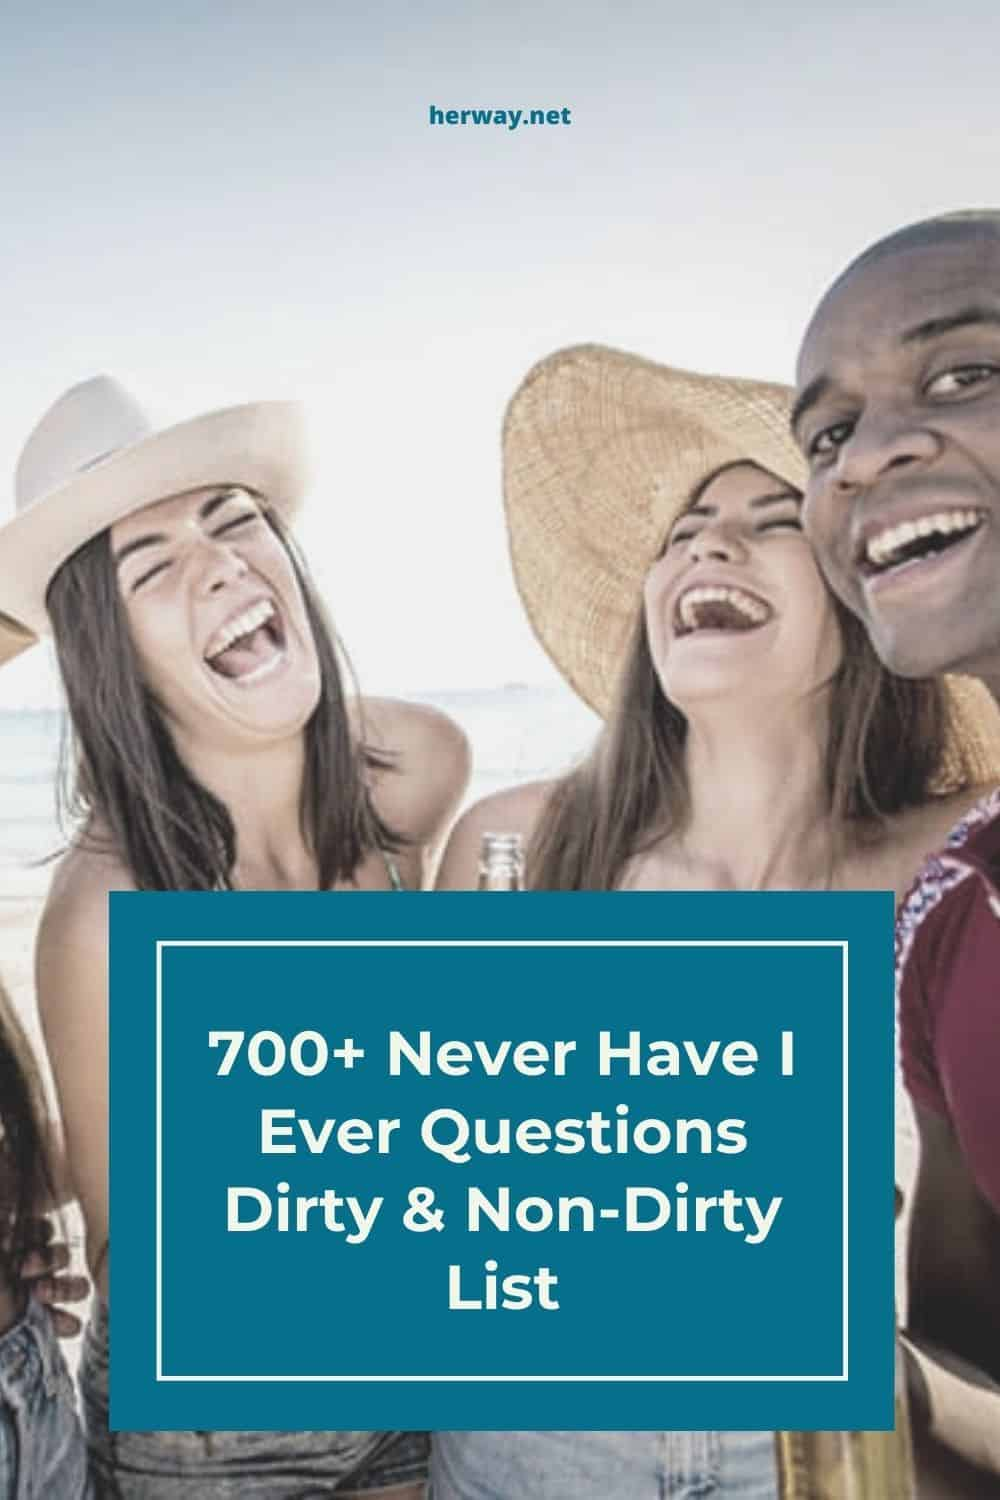 700+ Never Have I Ever Questions Dirty & Non-Dirty List